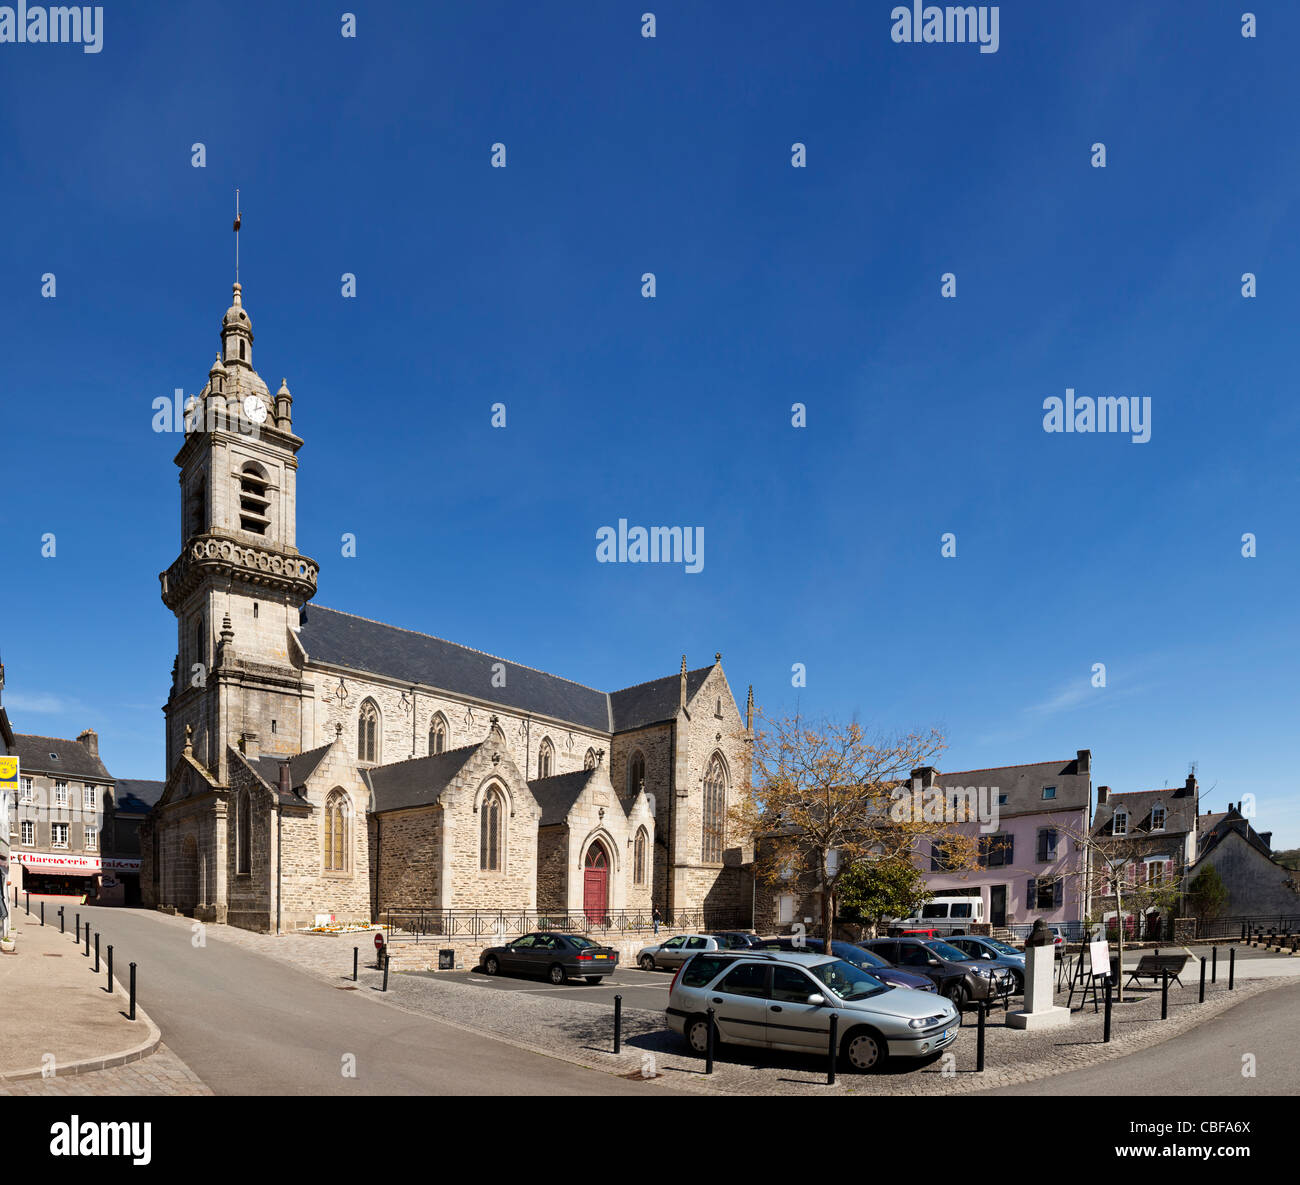 Saint Julien church in Chateauneuf du Faou, Finistere, Brittany, France - Stock Image